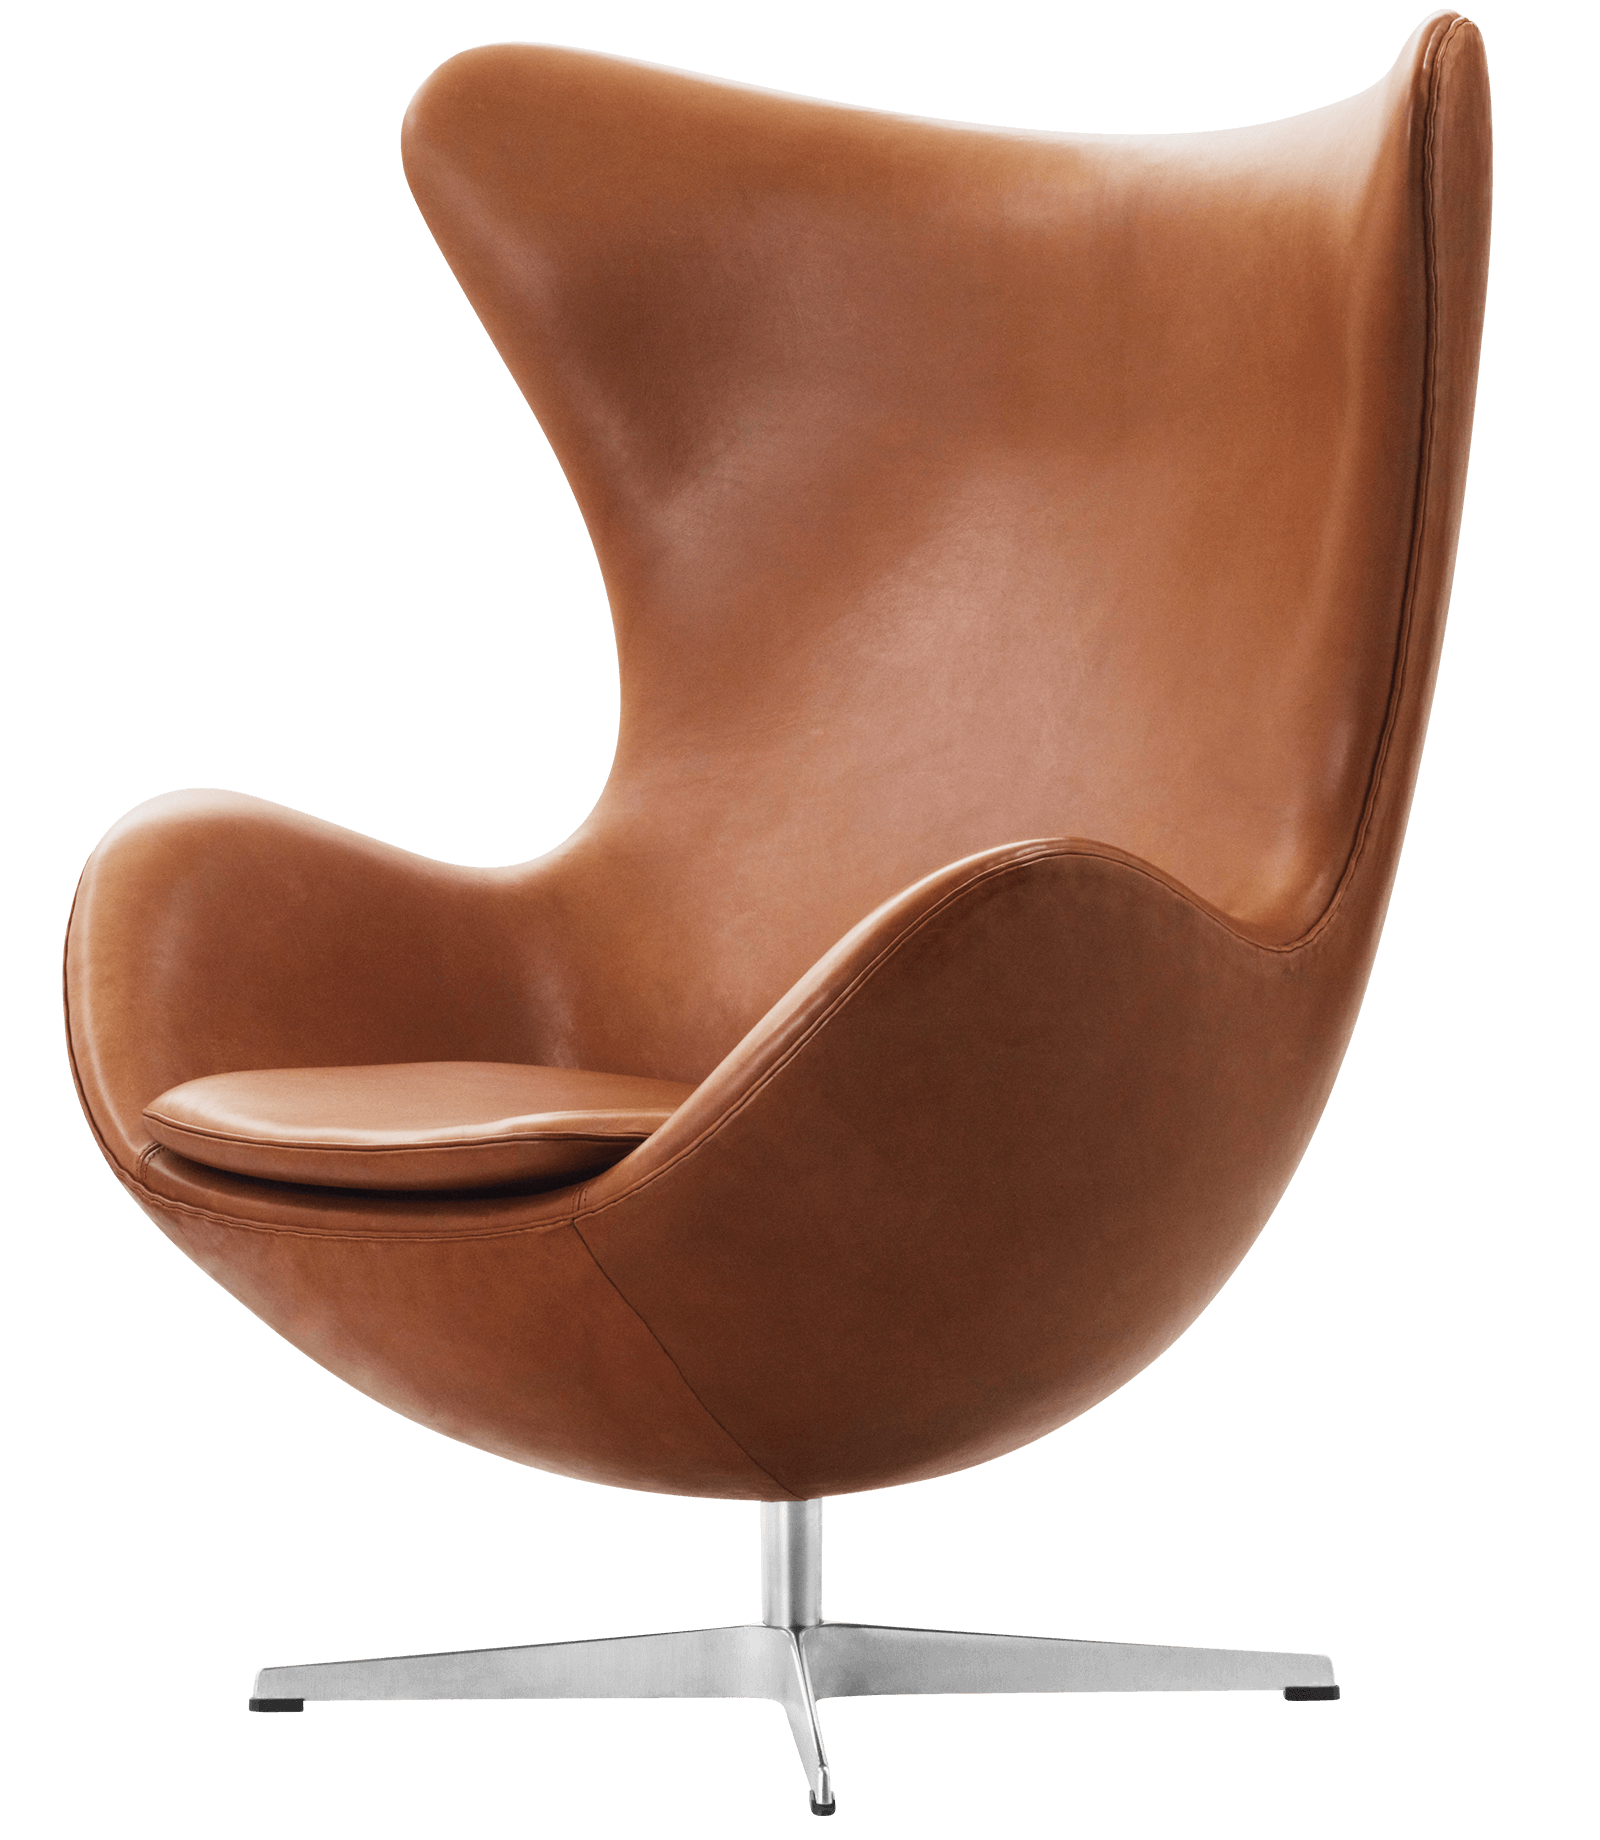 Egg elegance walnut lounge chair by Arne Jacobsenpng